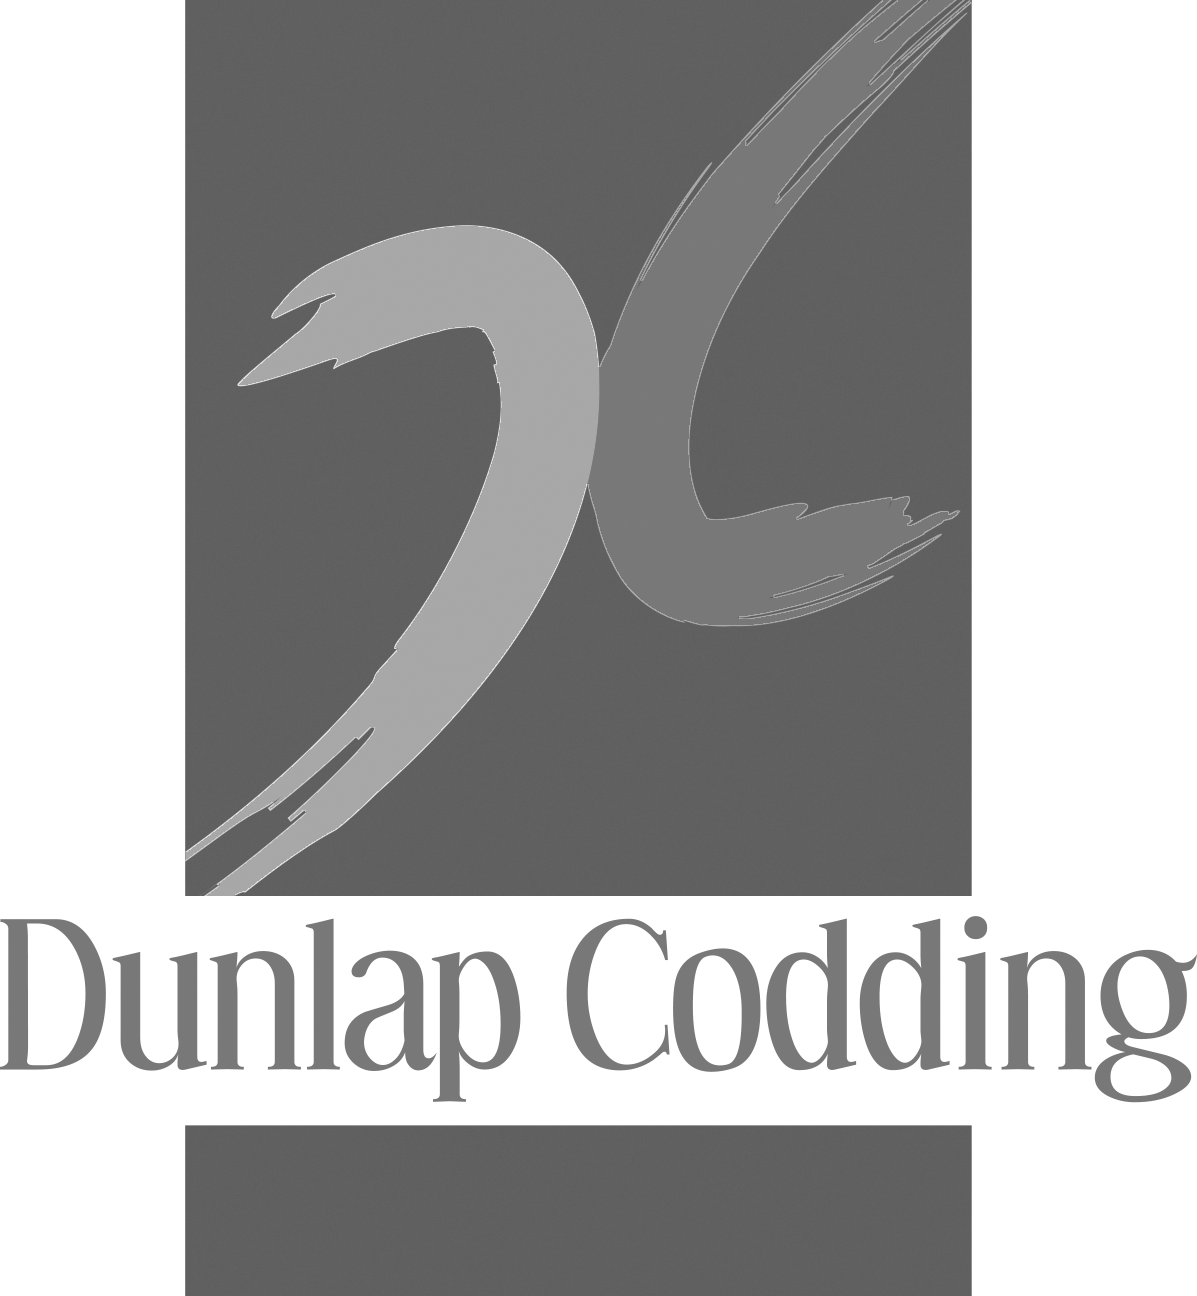 dunlap-codding-grayscale.png